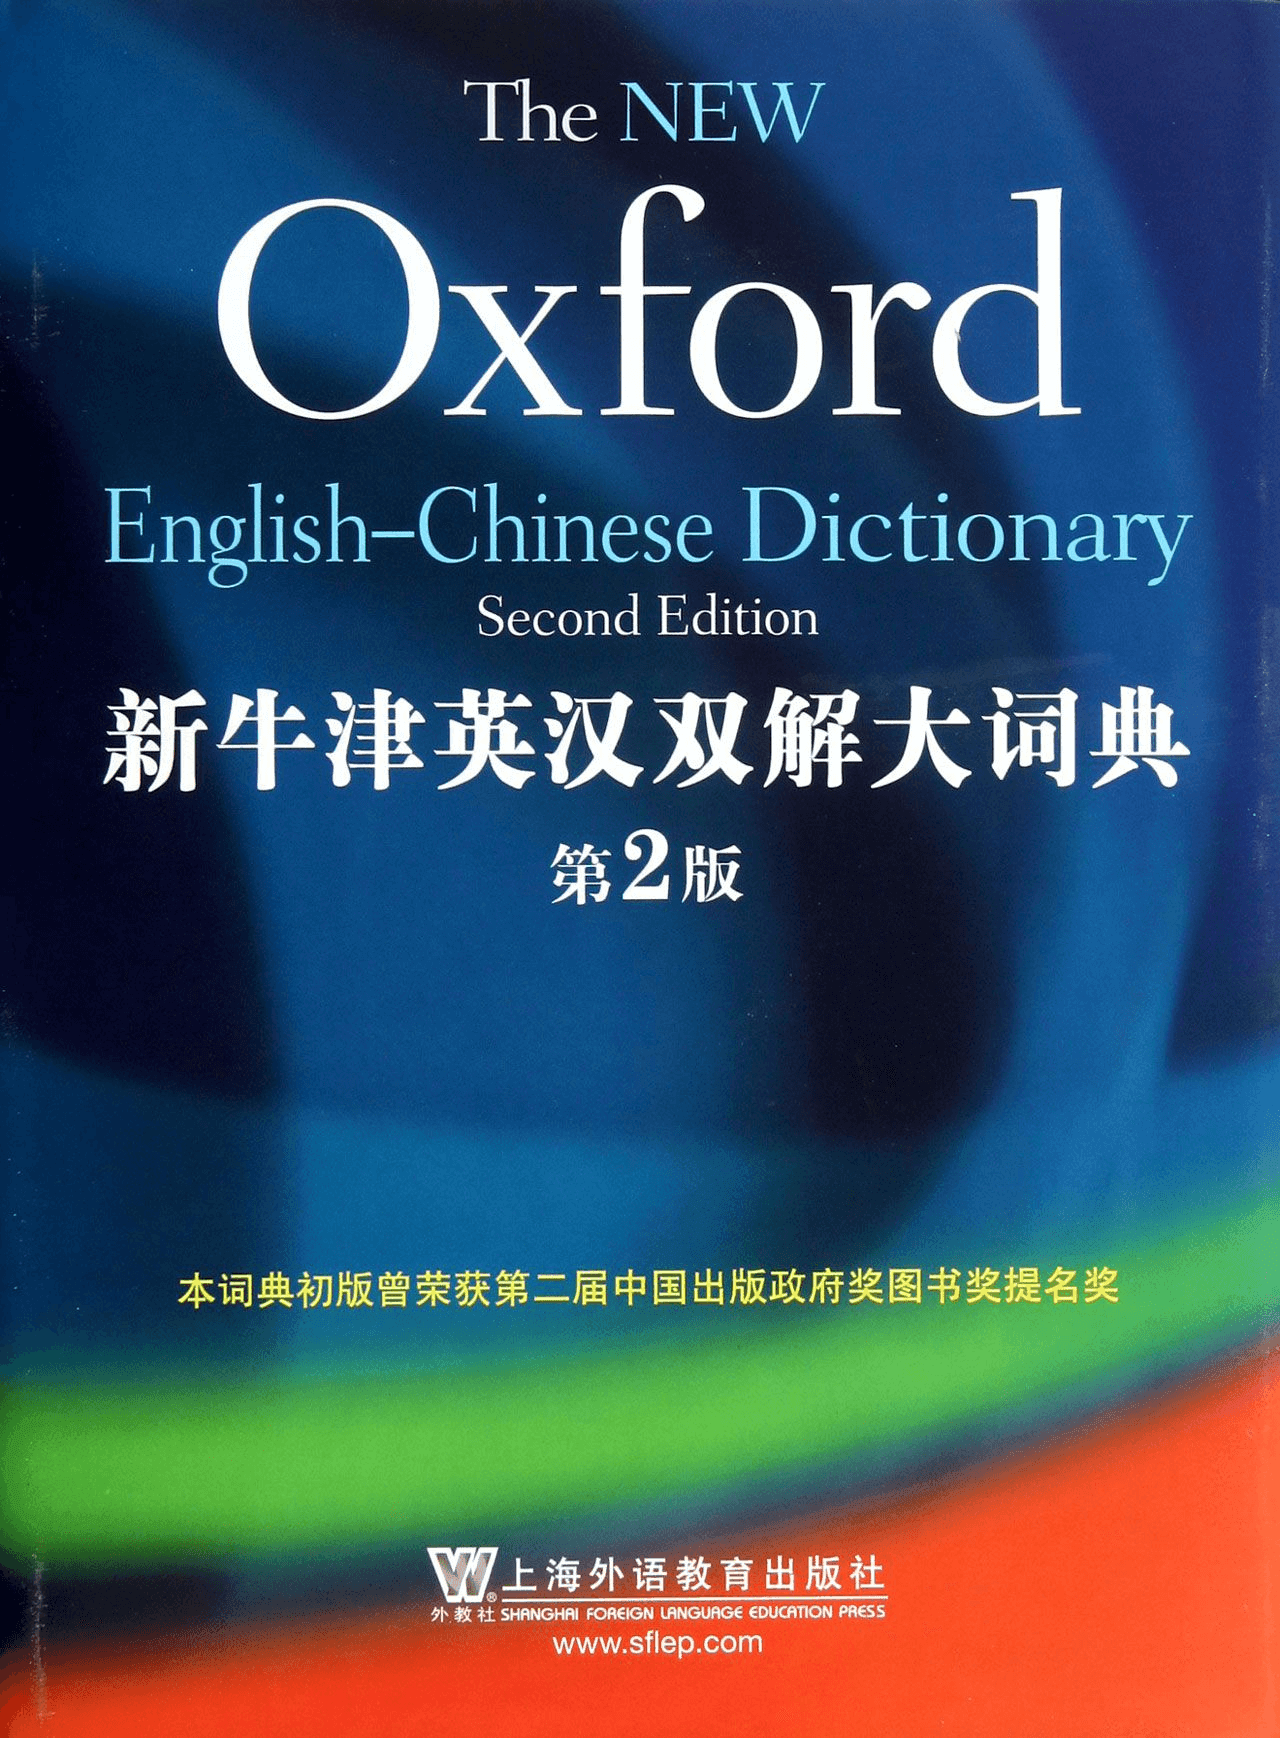 The NEW Oxford English-Chinese Dictionary (Second Edition) 新牛津英汉双解大词典(第2版)